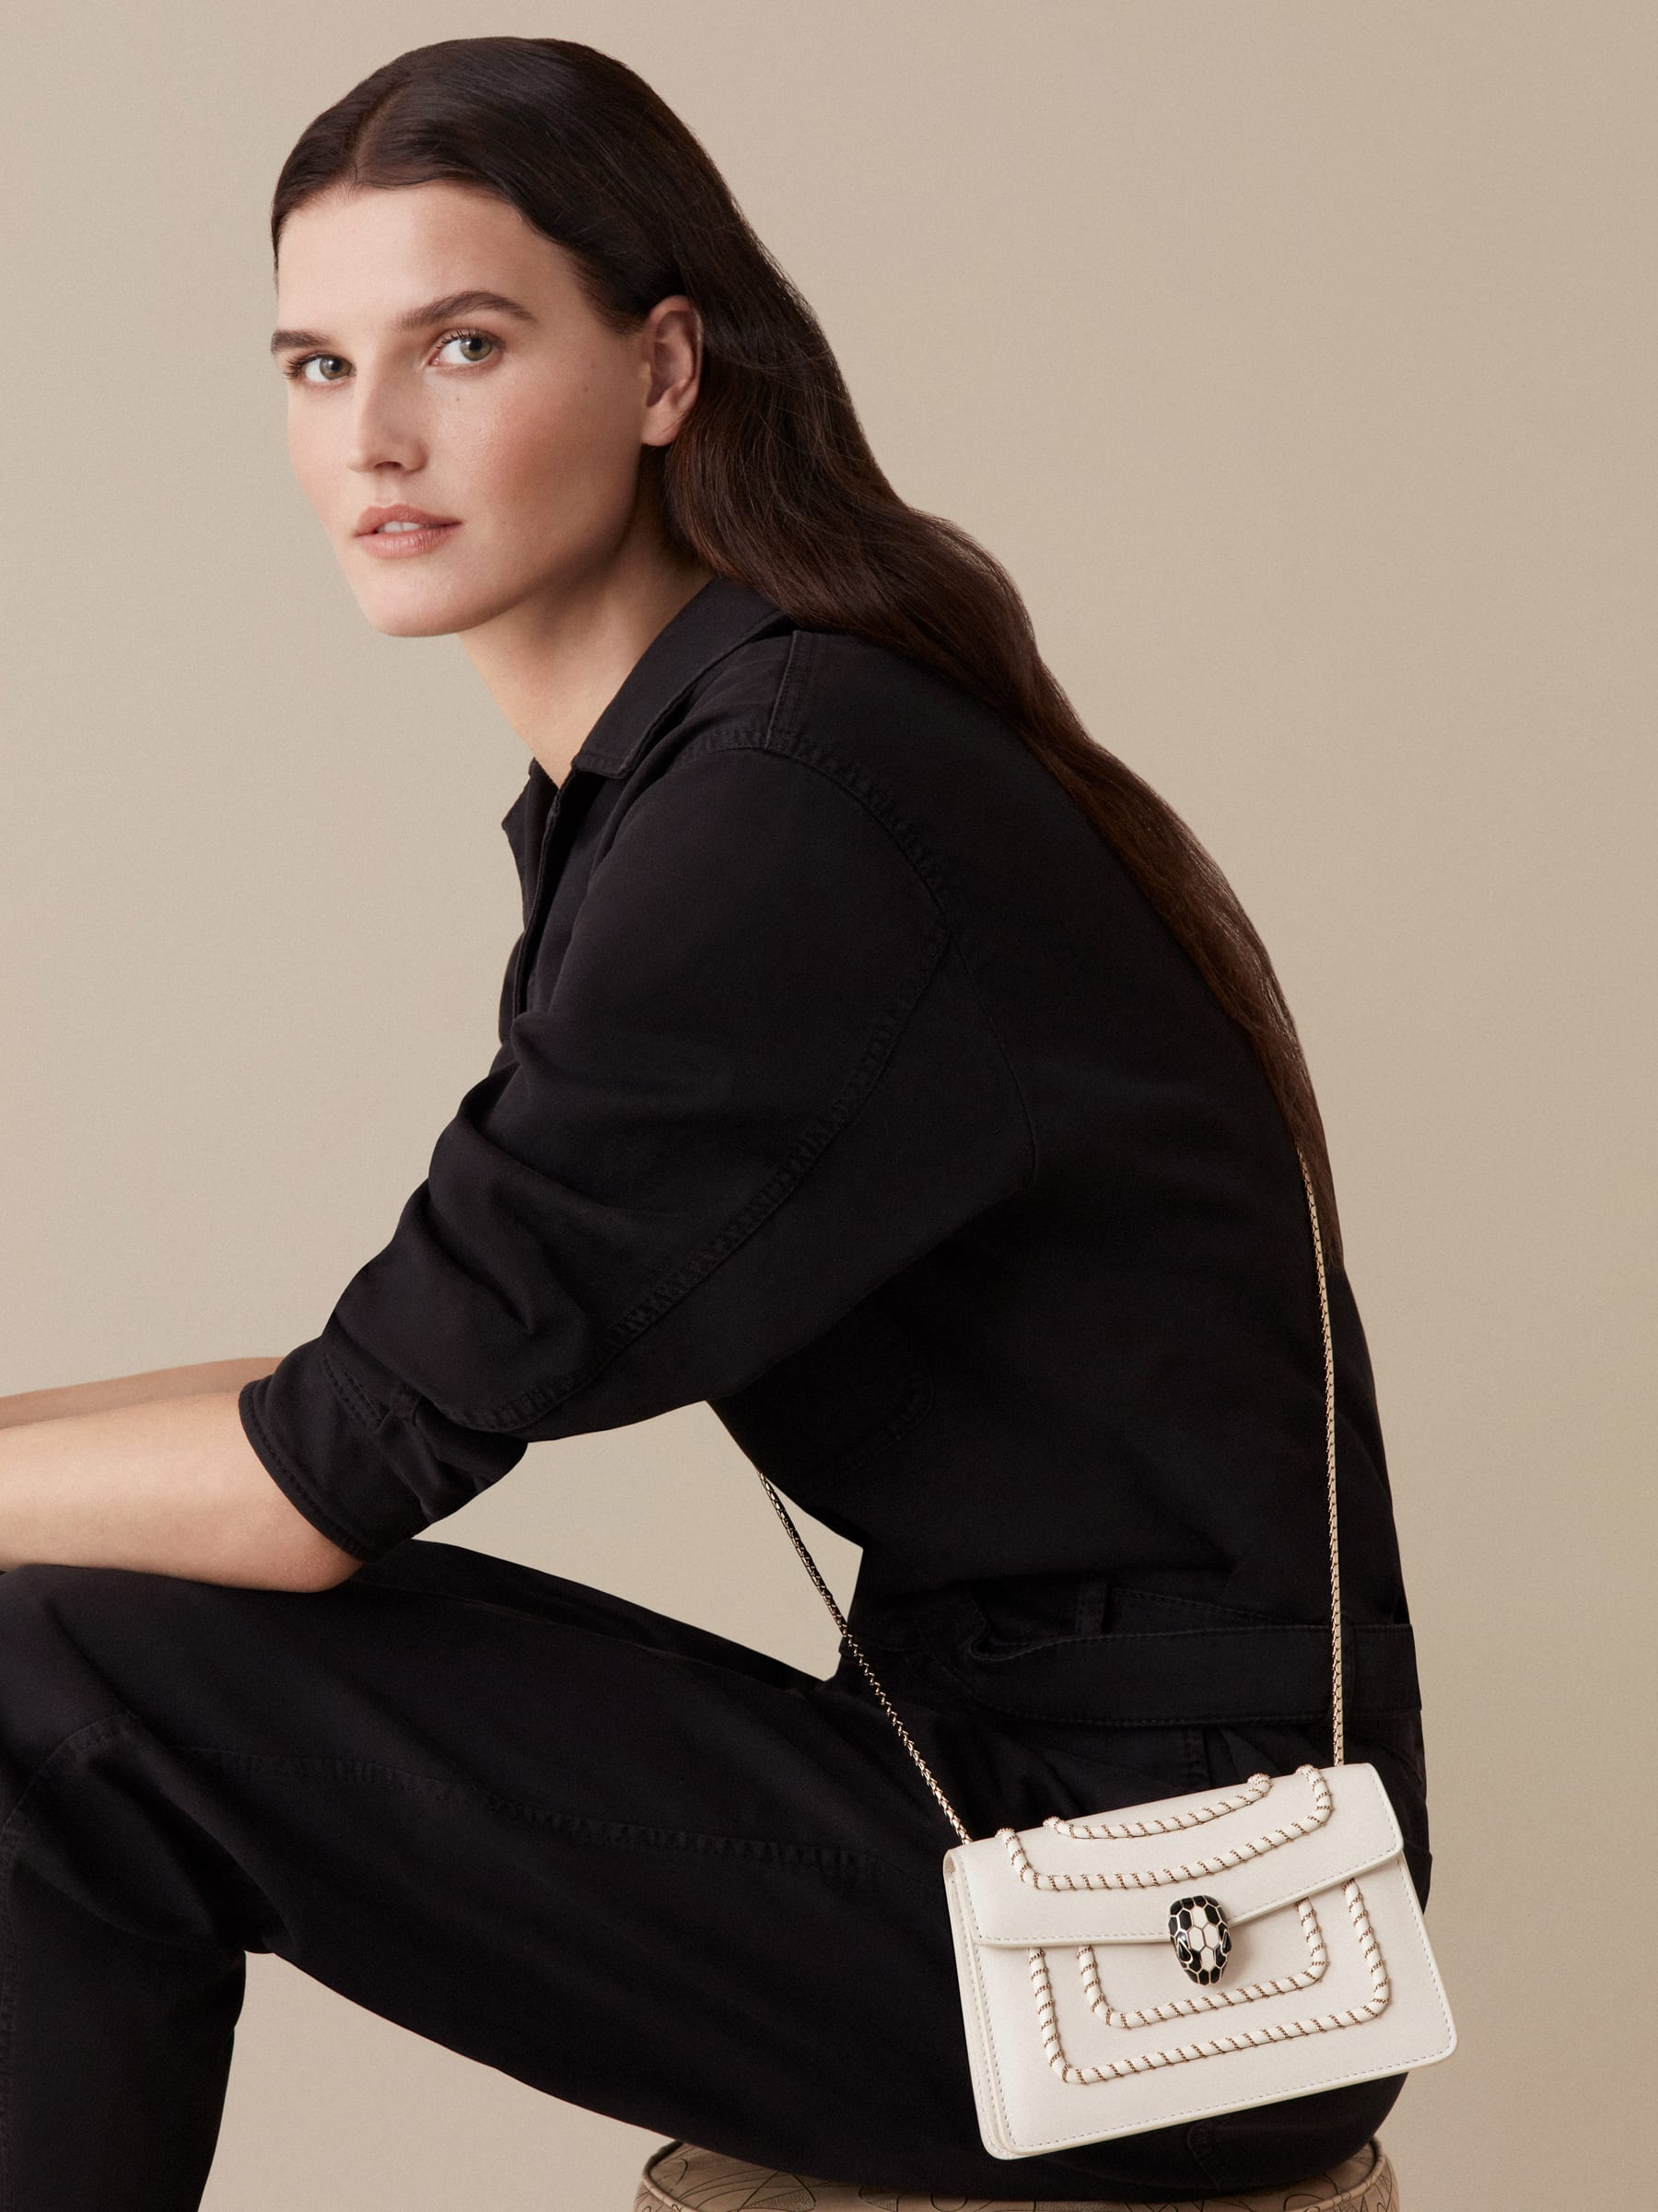 Serpenti Forever mini crossbody bag in white agate calf leather with woven chain décor. Brass light gold-plated snake head closure in black and white enamel, with black onyx eyes. 288045 image 5